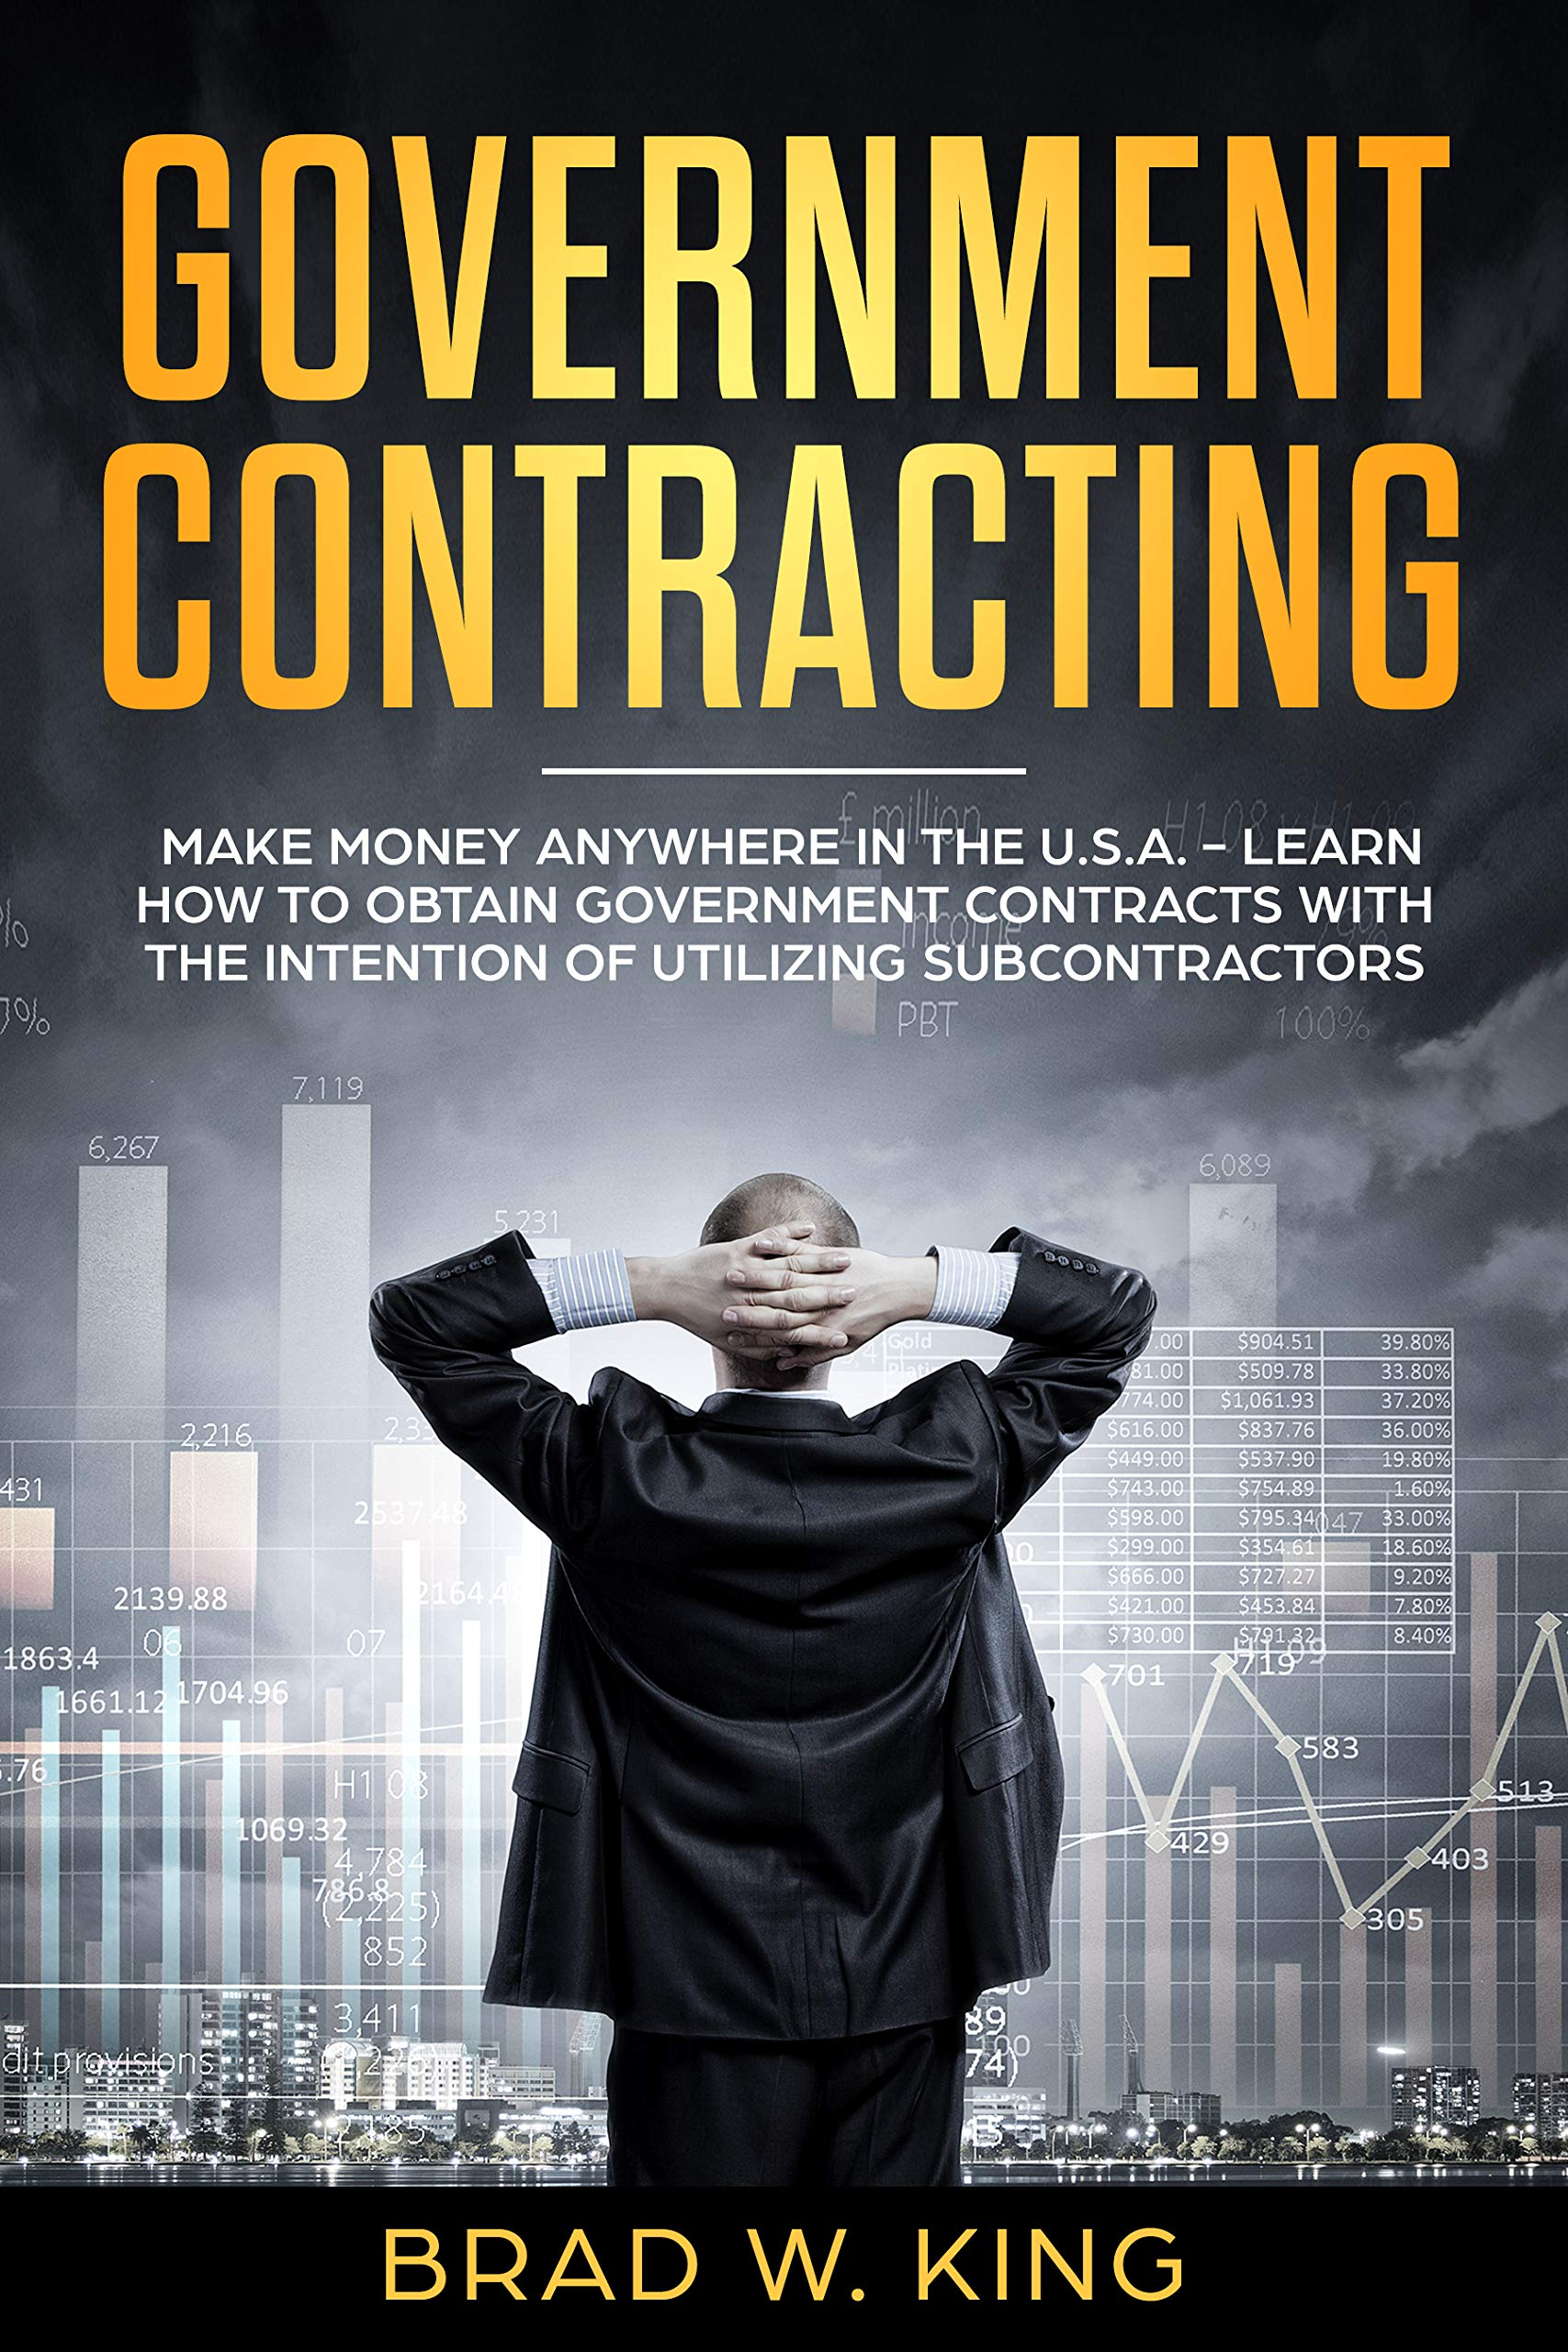 Government Contracting - Make Money Anywhere in the U.S.A.: How to Obtain Government Contracts with the Intention of Utilizing Subcontractors